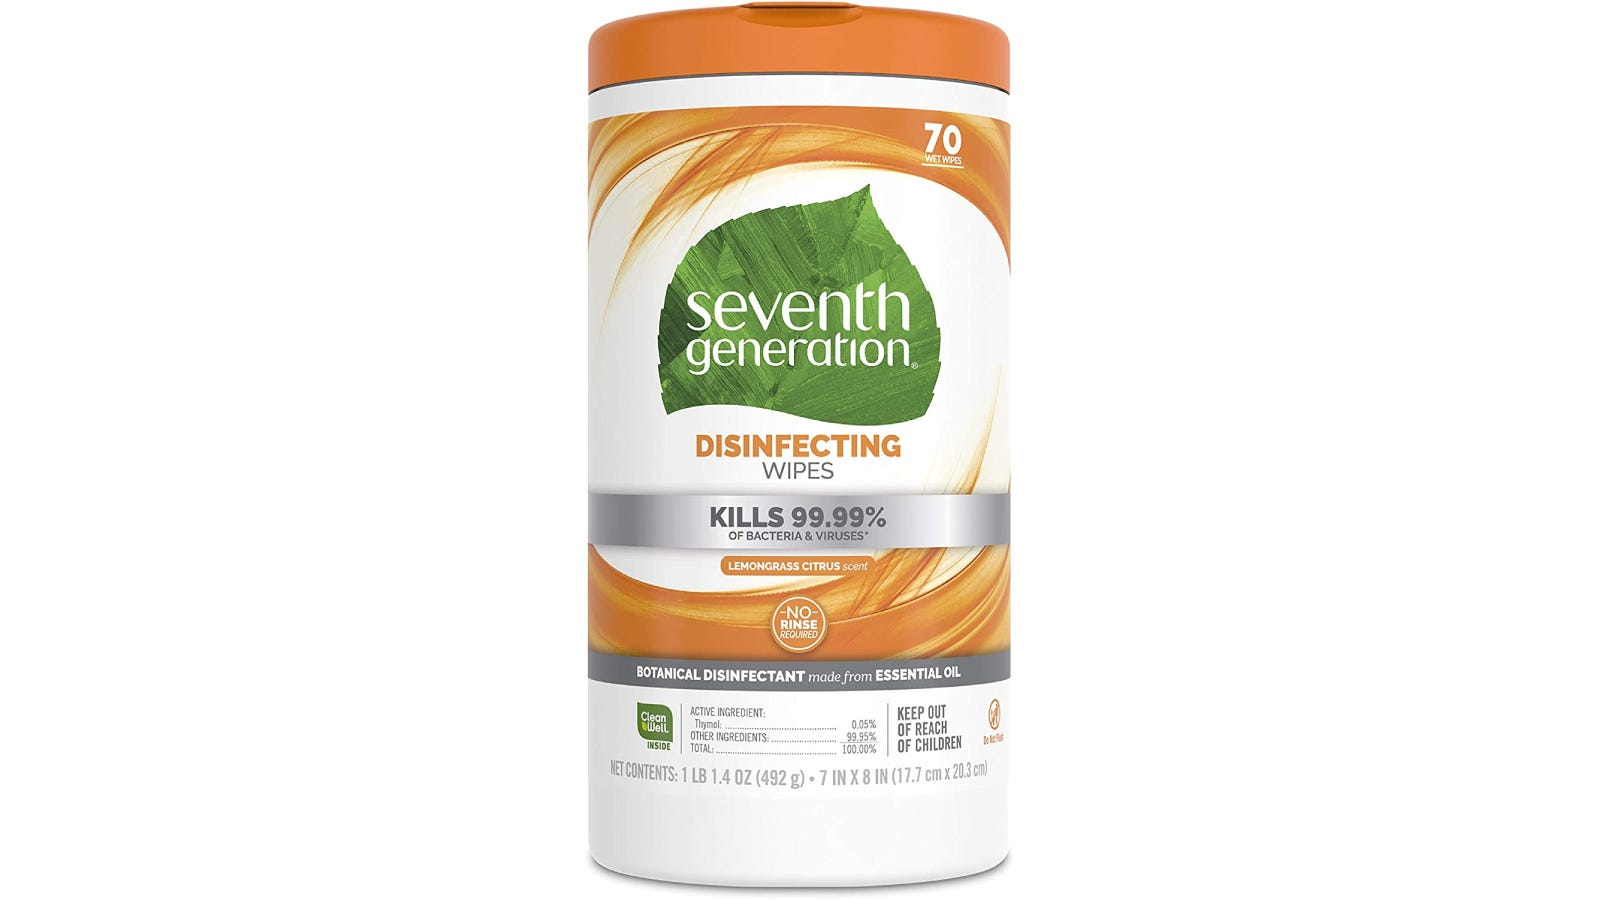 A Seventh Generation wipe container displayed against a white background.